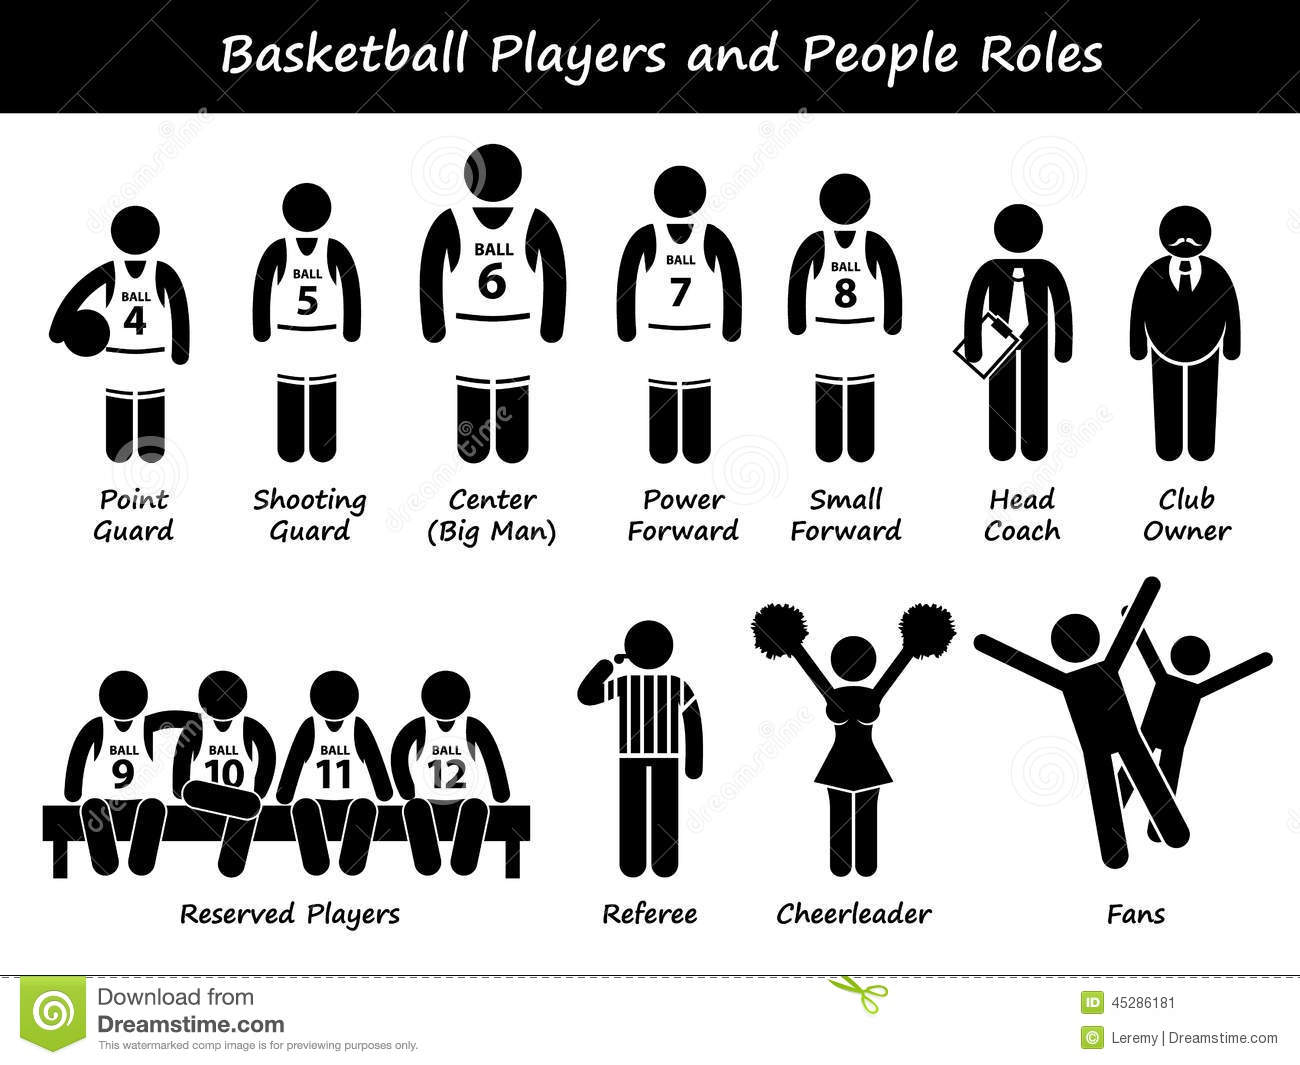 Basketball Players Team Cliparts Icons Stock Vector - Image: 45286181